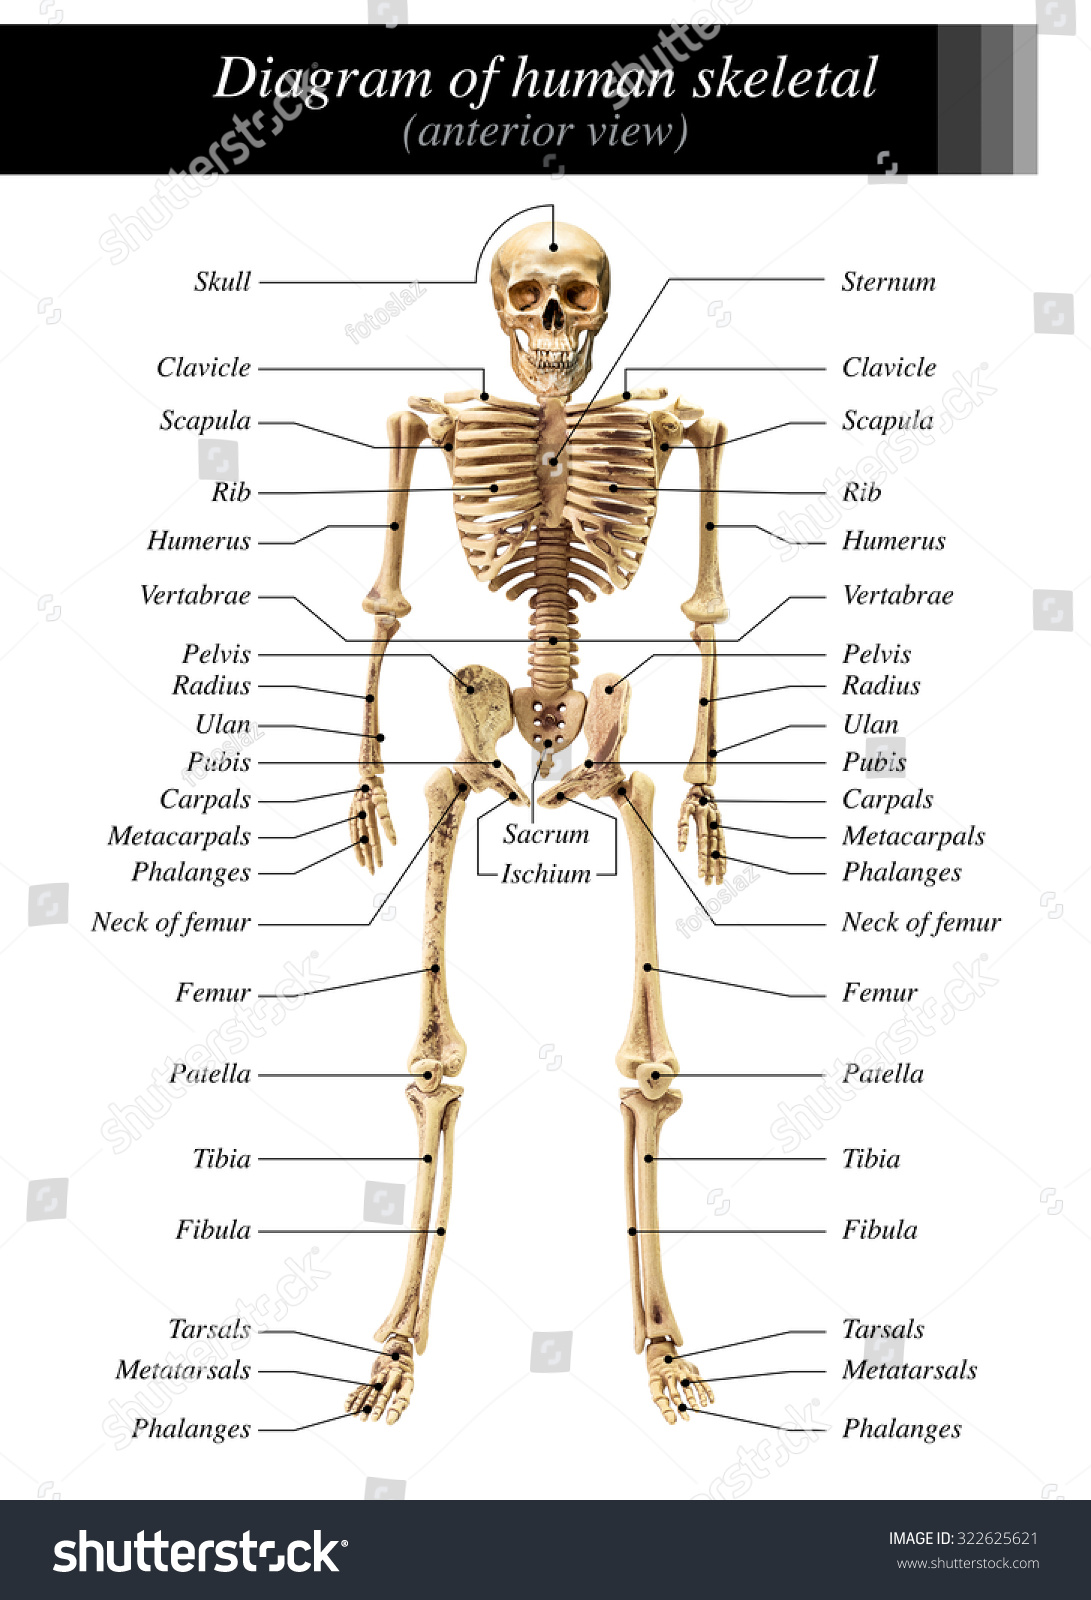 human skeleton diagram anterior view on stock photo (edit now